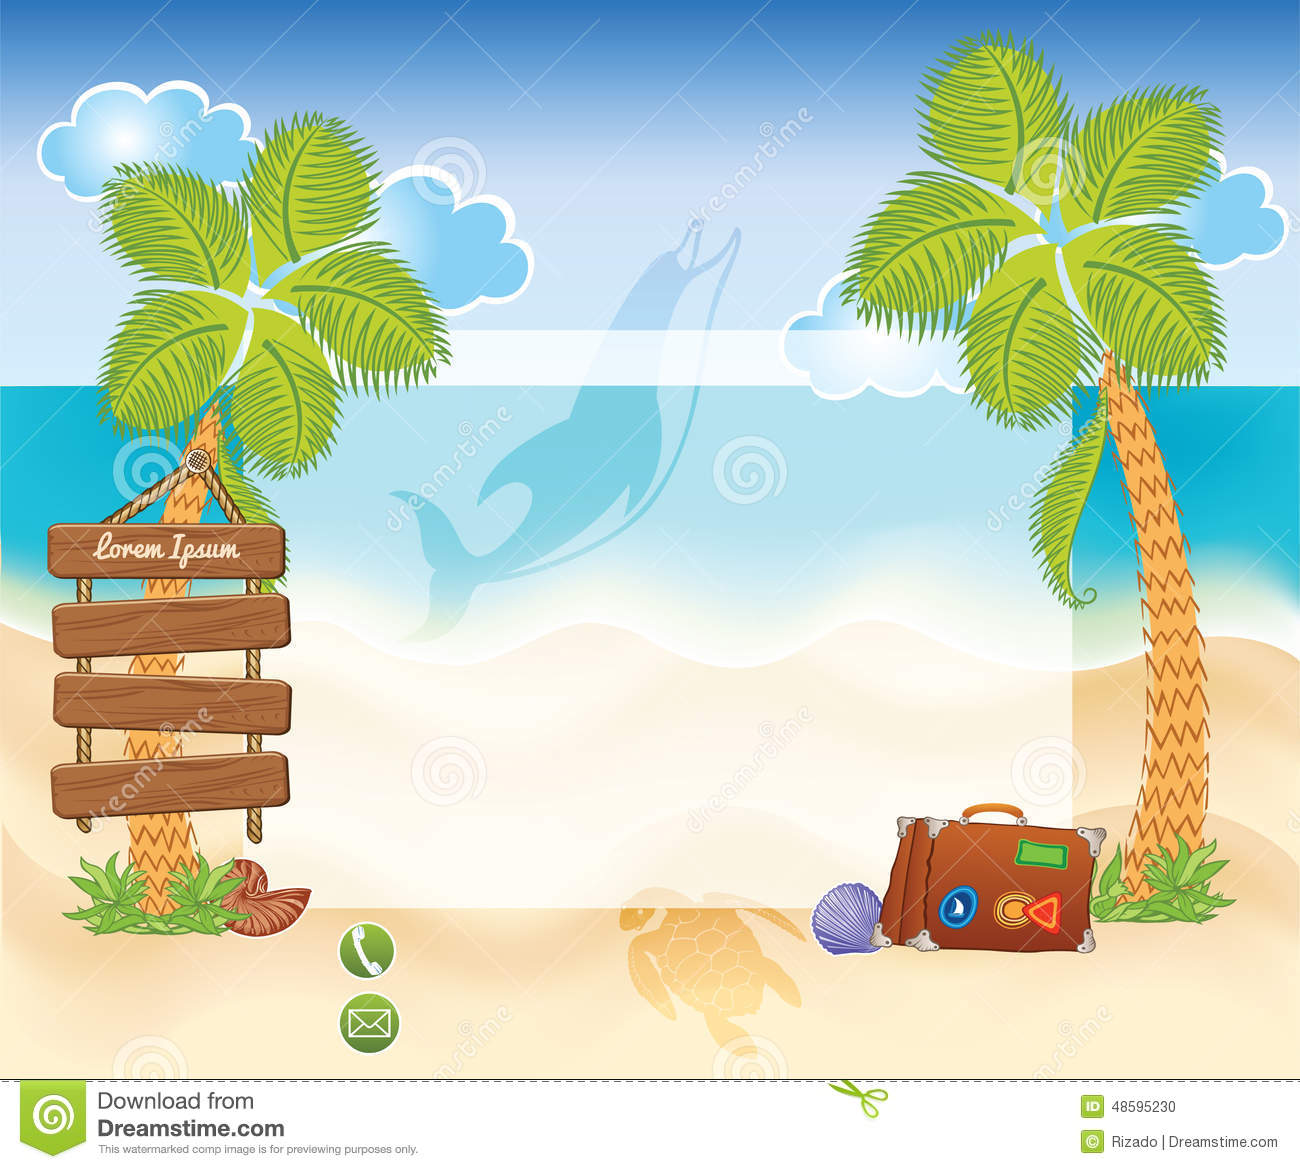 beach background with palms stock vector illustration of seashell